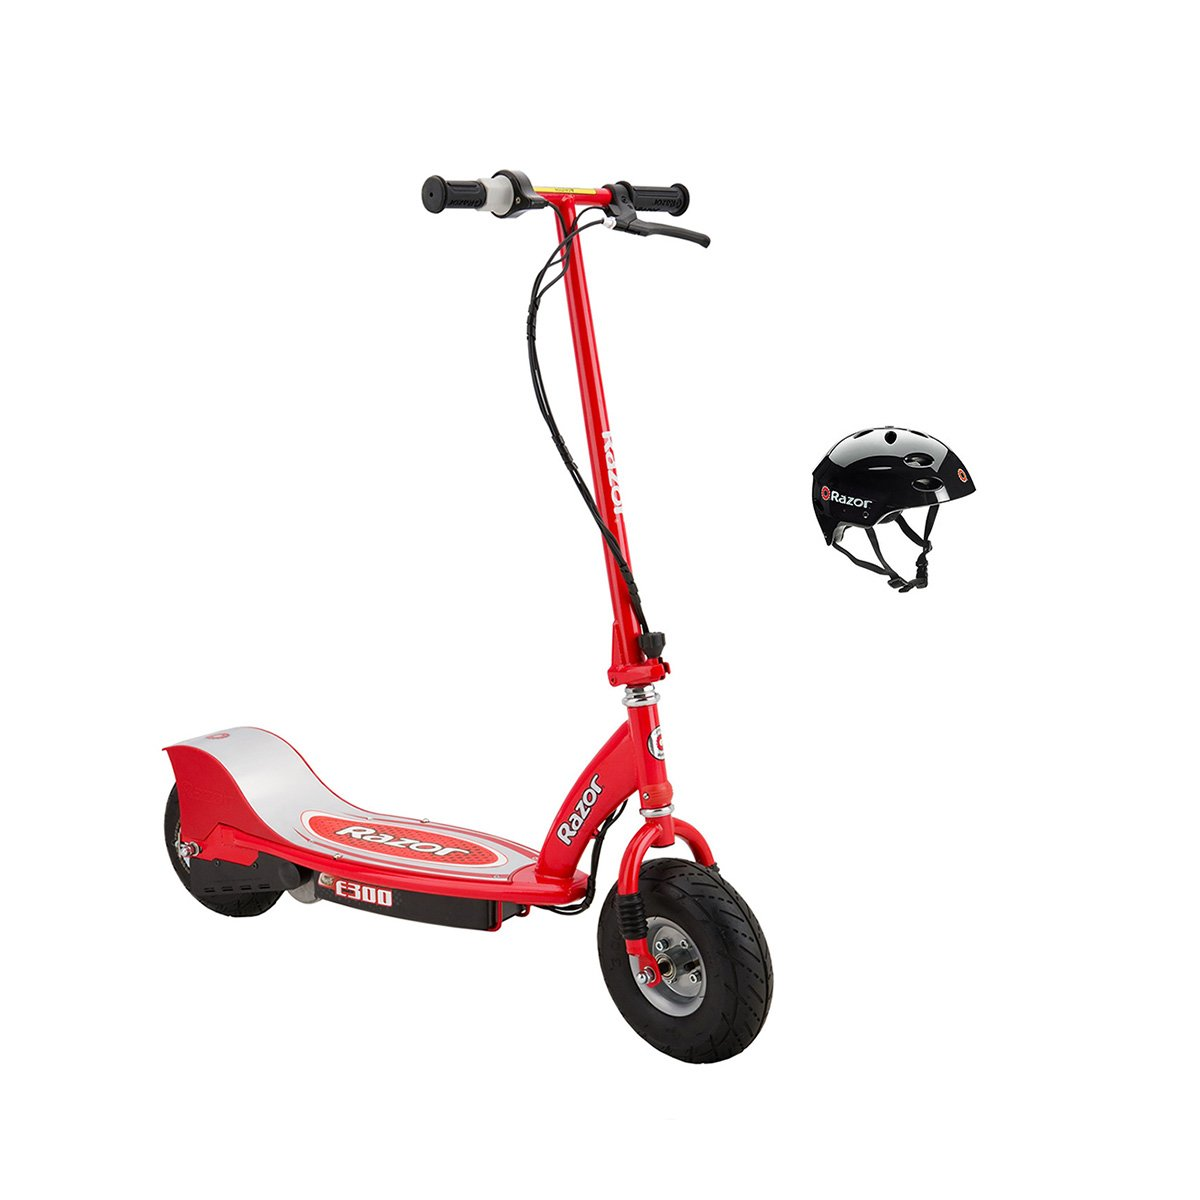 Razor E300 24V Rechargeable Electric Motorized Red Scooter + V17 Youth Helmet